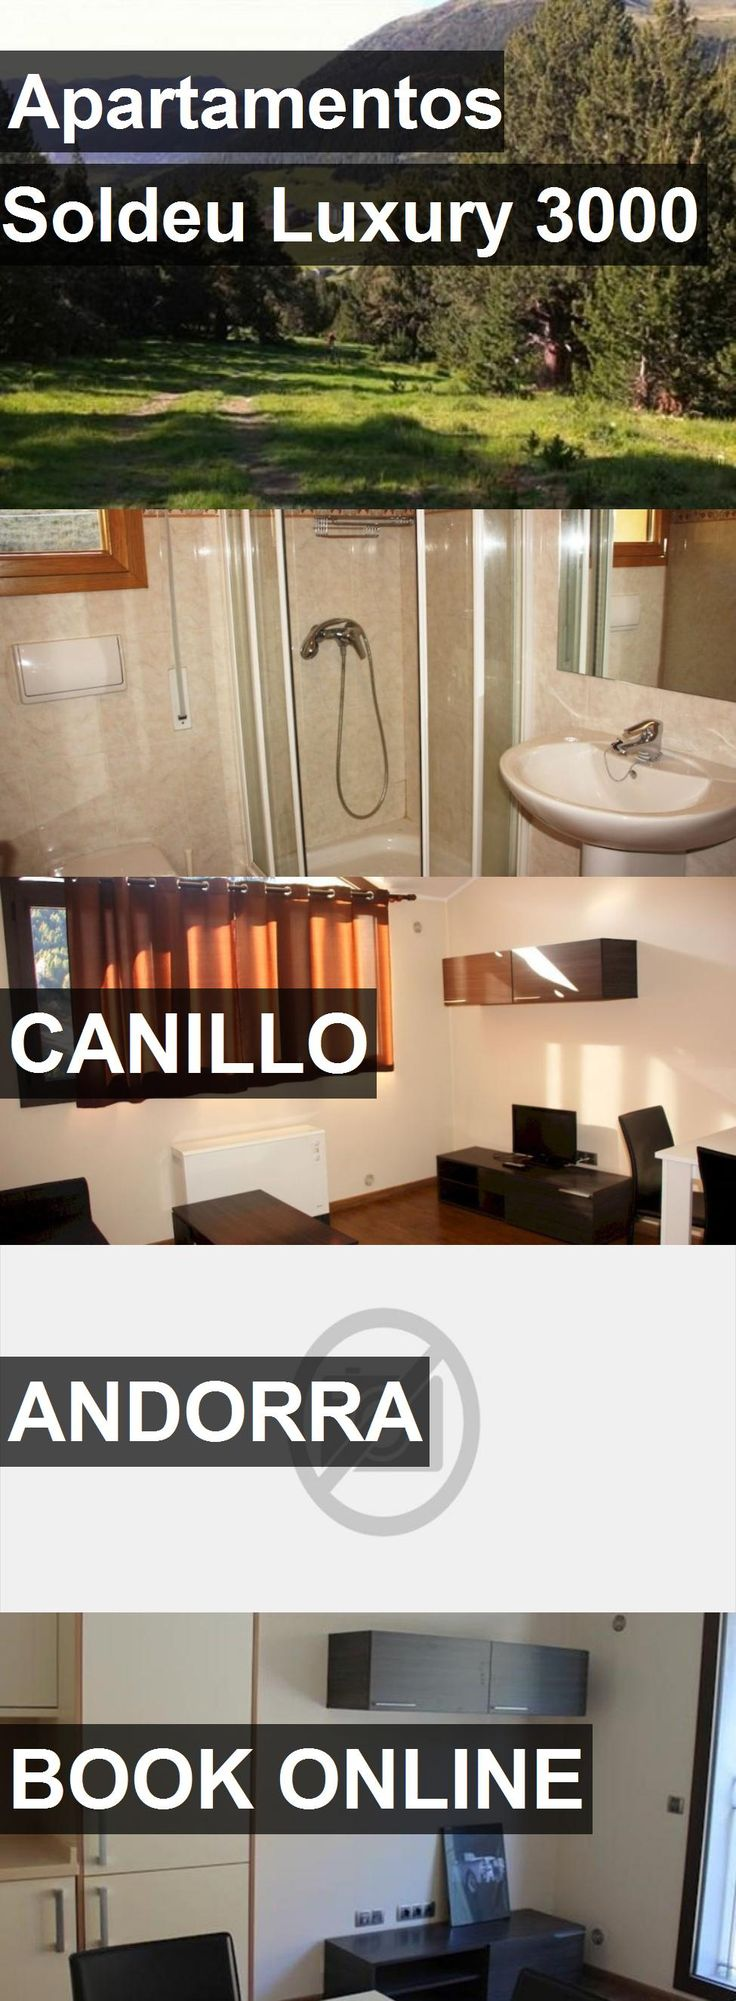 Hotel Apartamentos Soldeu Luxury 3000 in Canillo, Andorra. For more information, photos, reviews and best prices please follow the link. #Andorra #Canillo #travel #vacation #hotel